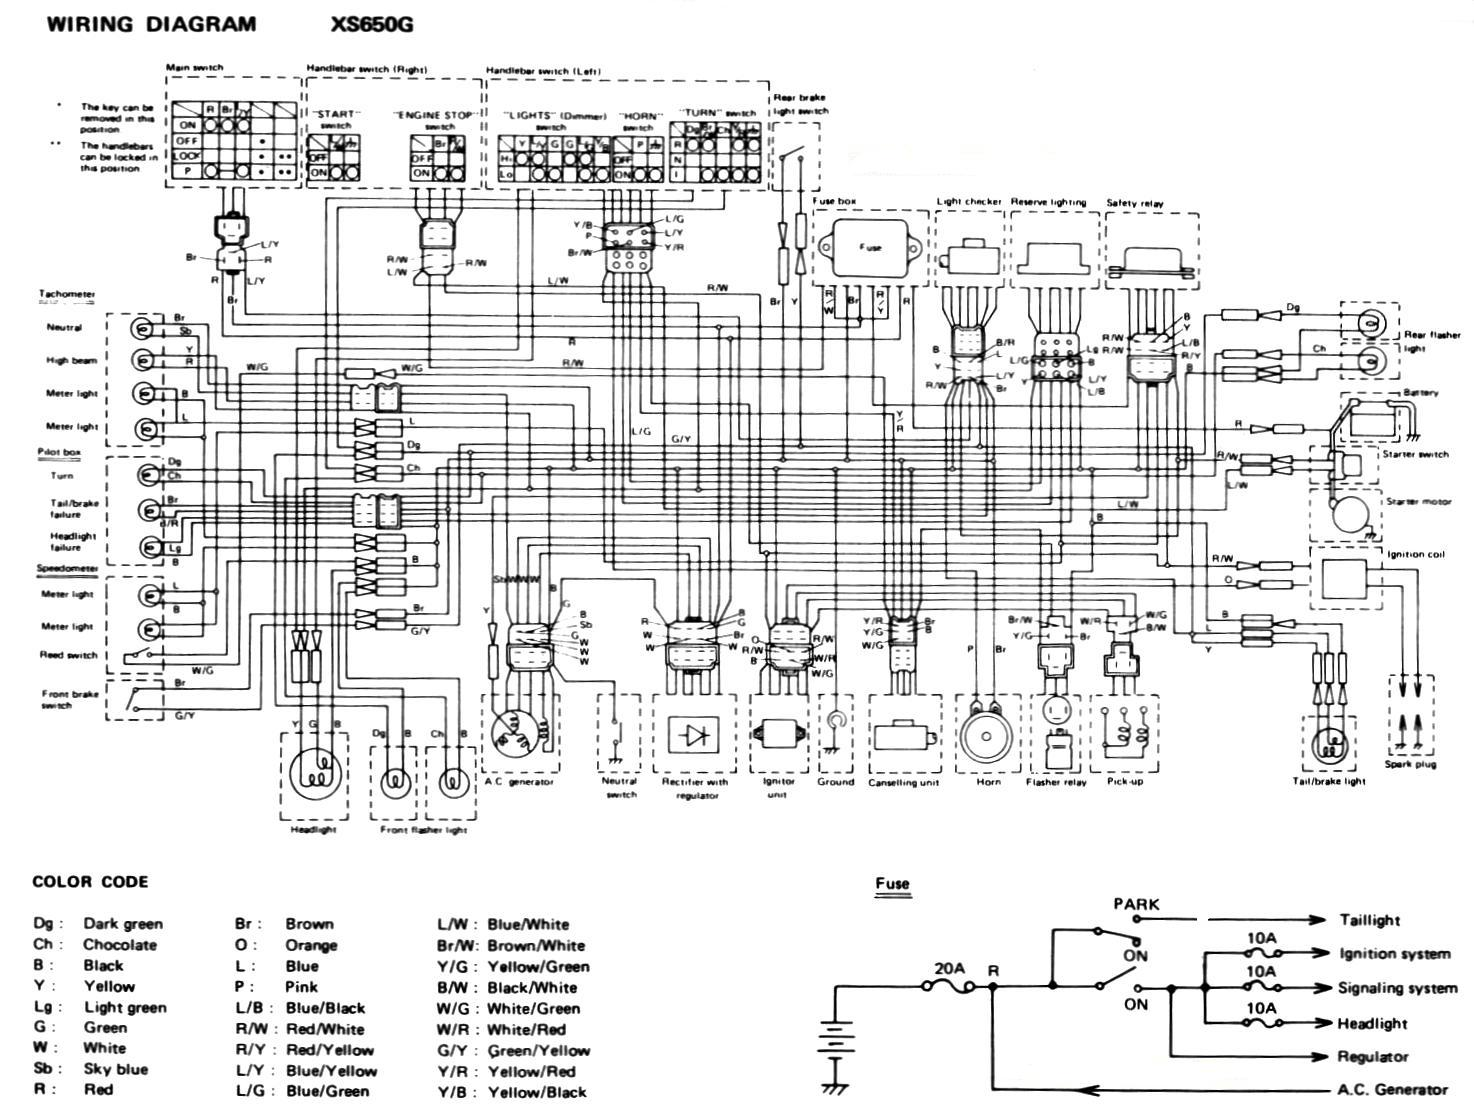 80XS650G wiring diagrams 78 cx500 wiring diagram at cos-gaming.co